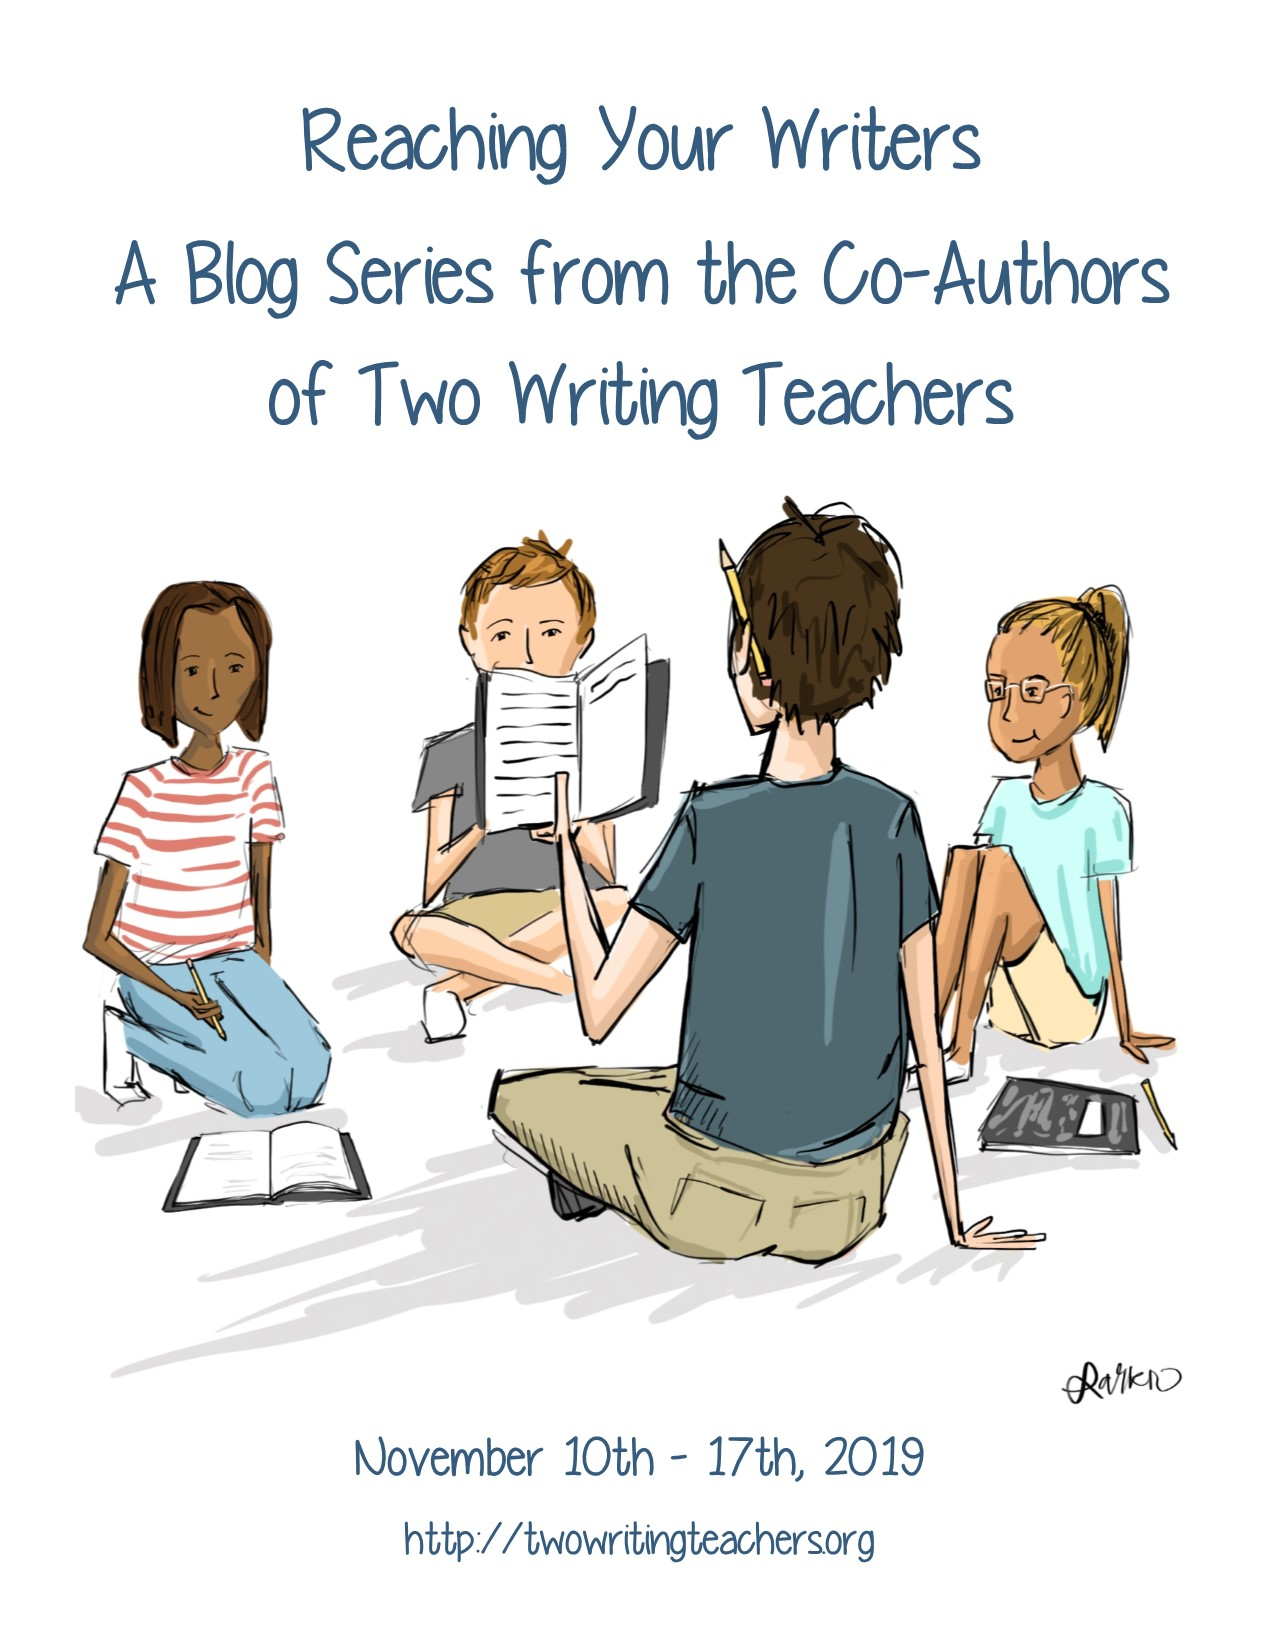 Reaching Your Writers Blog Series